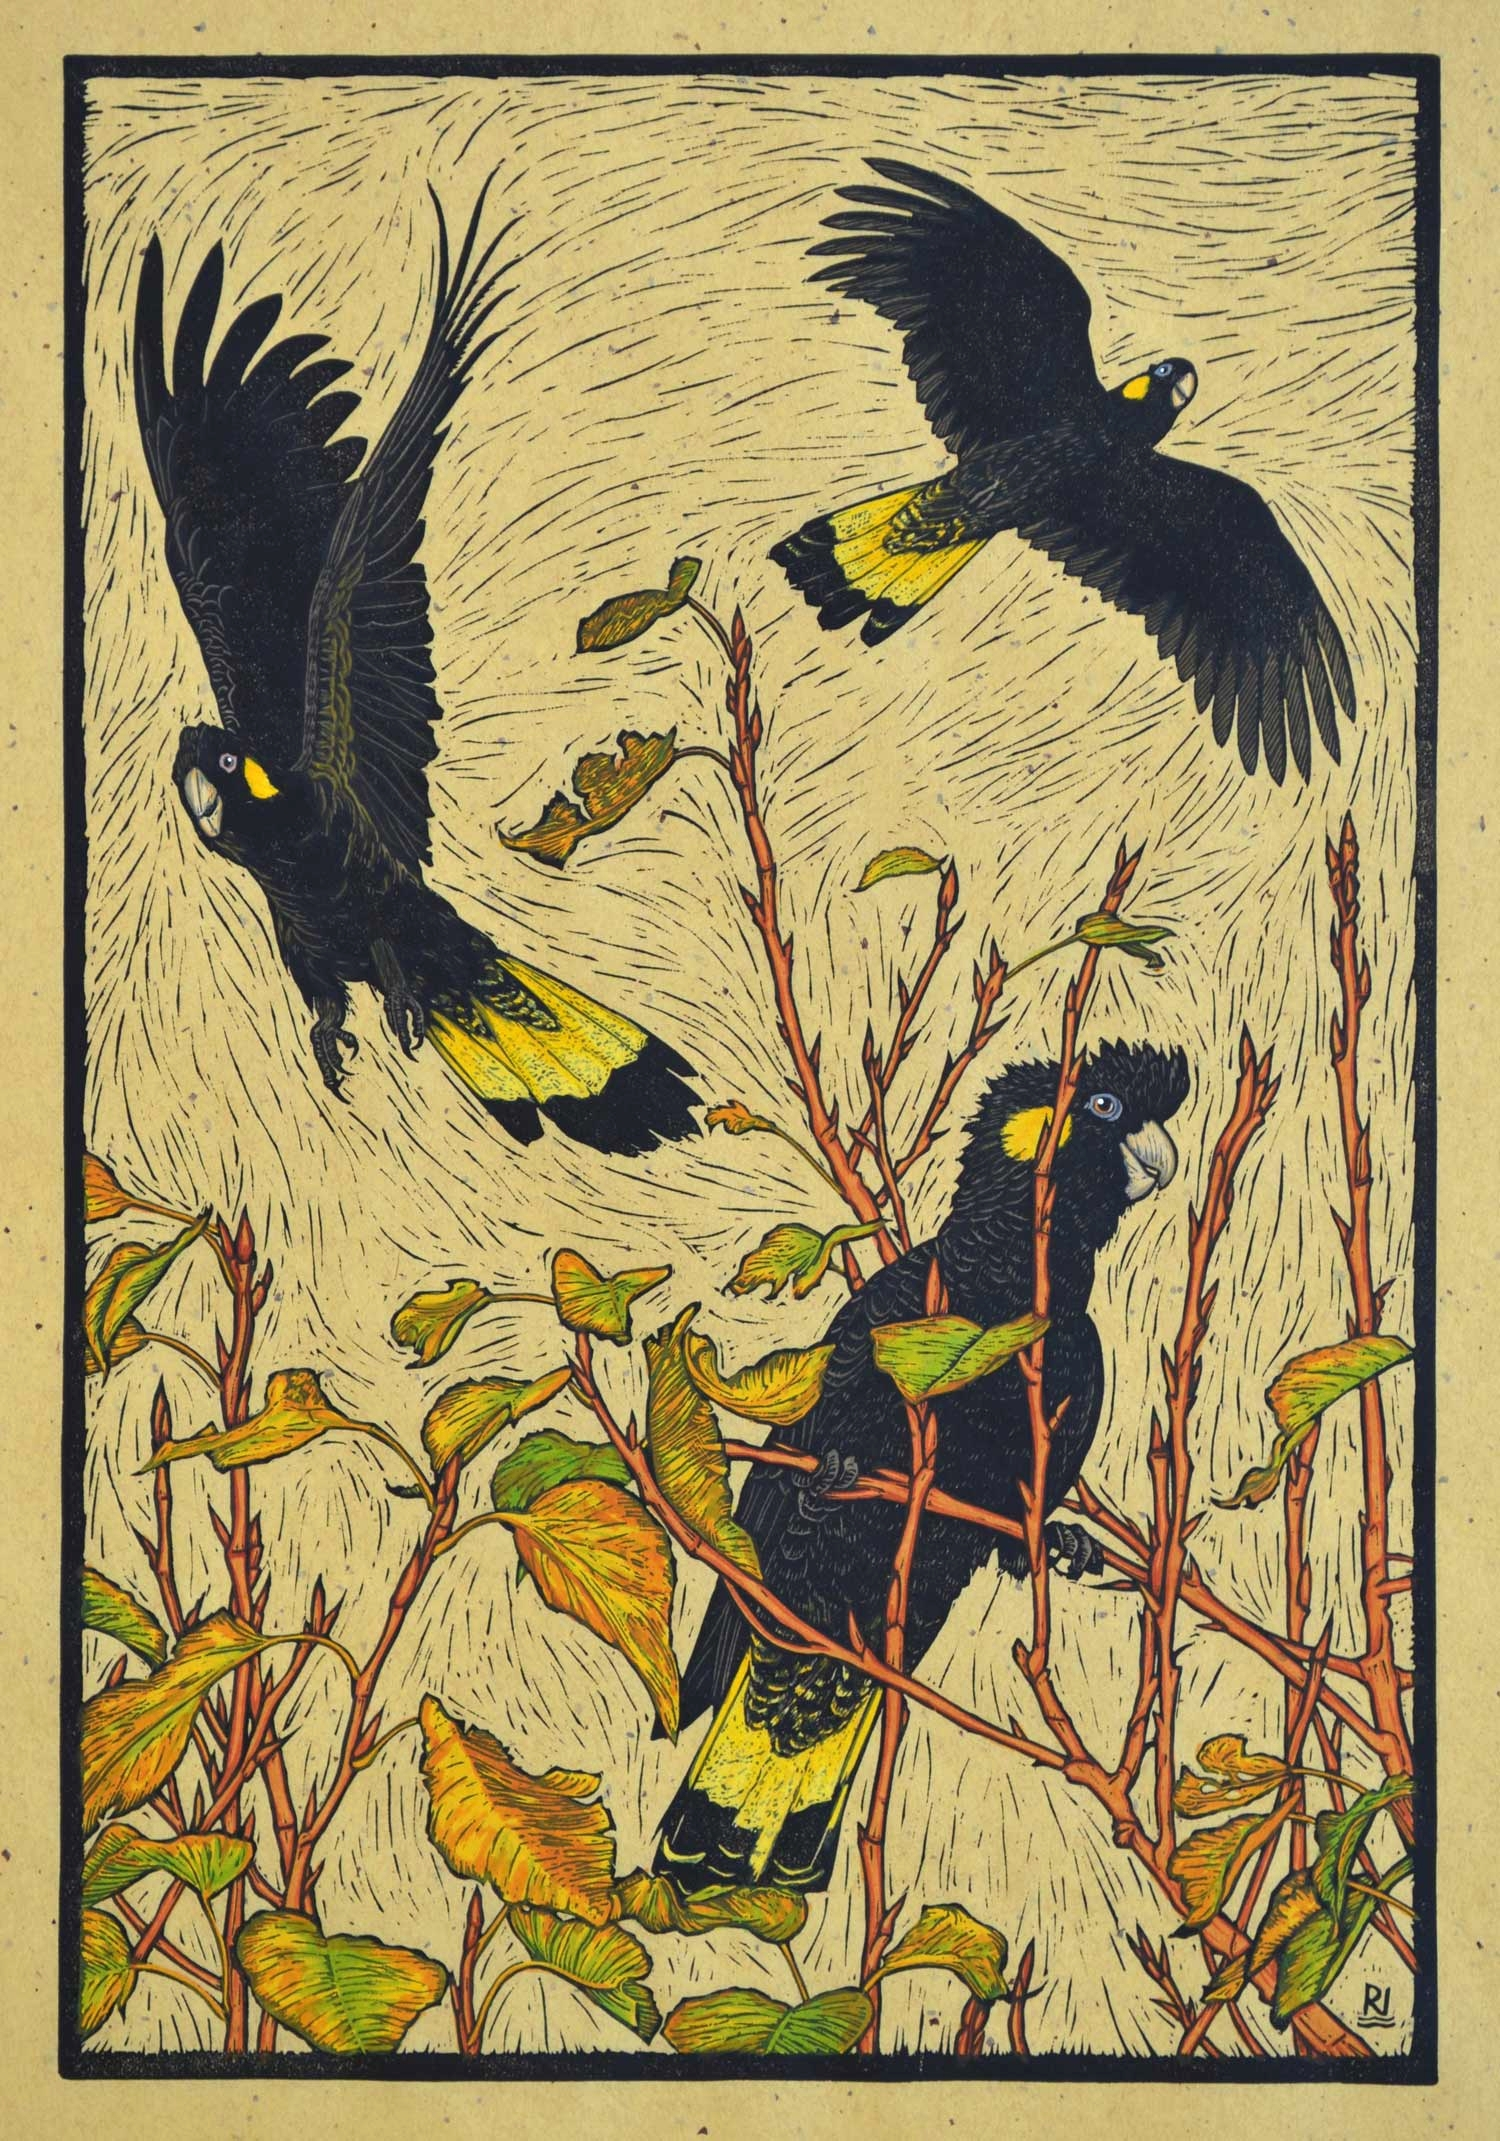 Three Yellow-tailed black Cockatoos (hand-coloured version)  53.5 x 36.5 cm, edition of 50  Hand-coloured linocut on handmade Japanese paper  $1,100